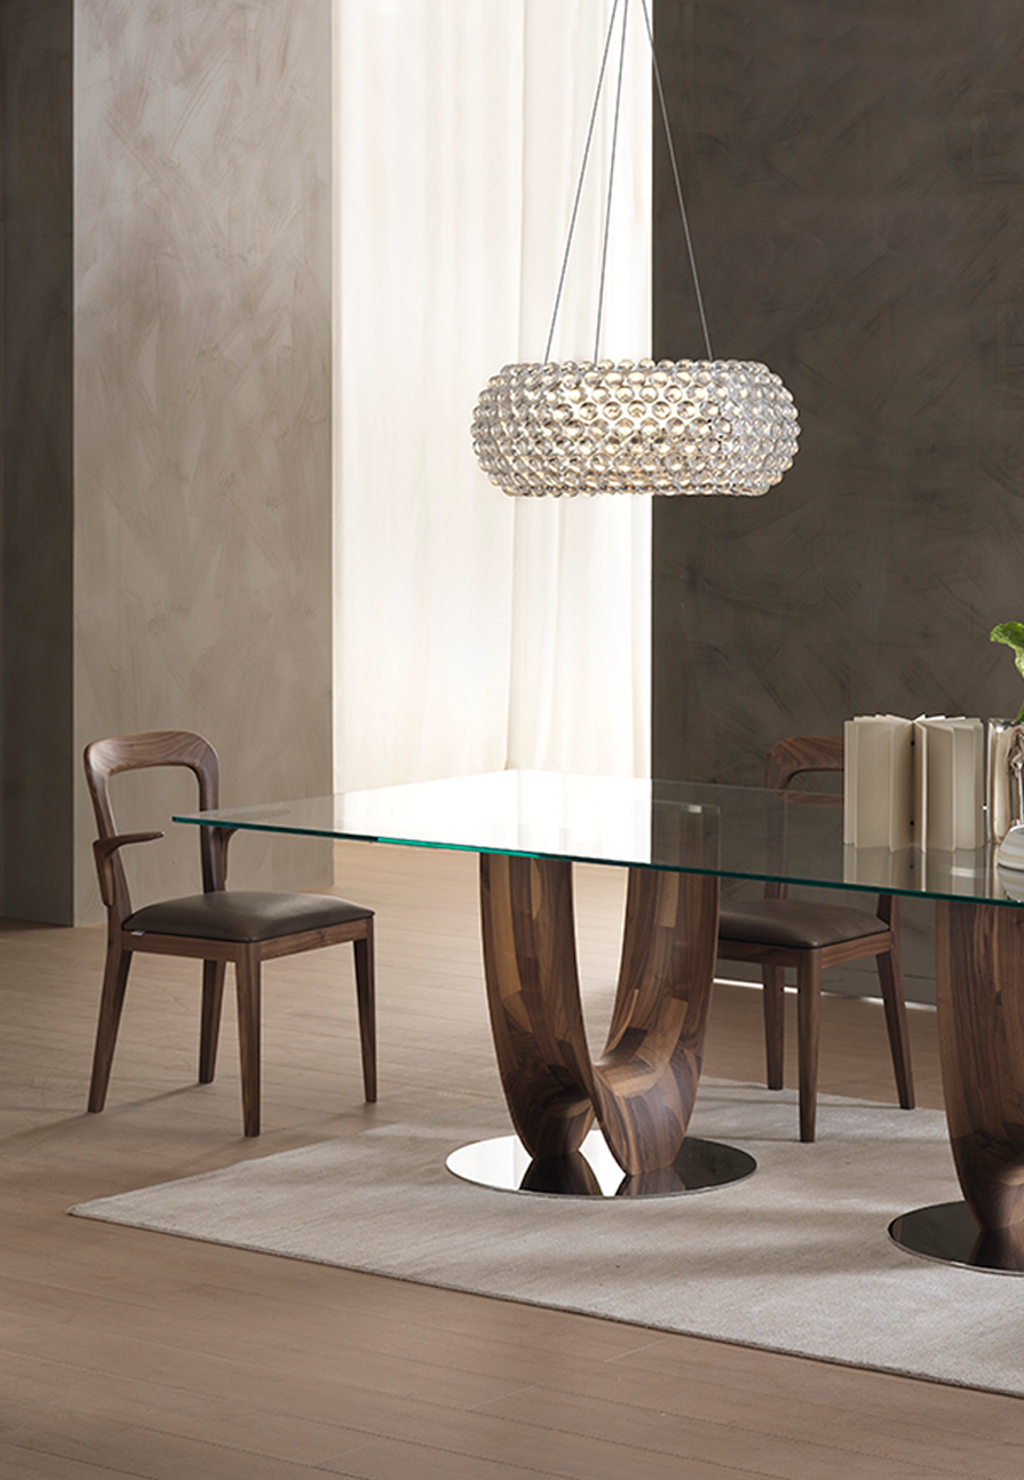 At The Table Or On The Table Axis Design Depot Furniture Furniture Miami Showroom Dining Table Modern Dining Table Table